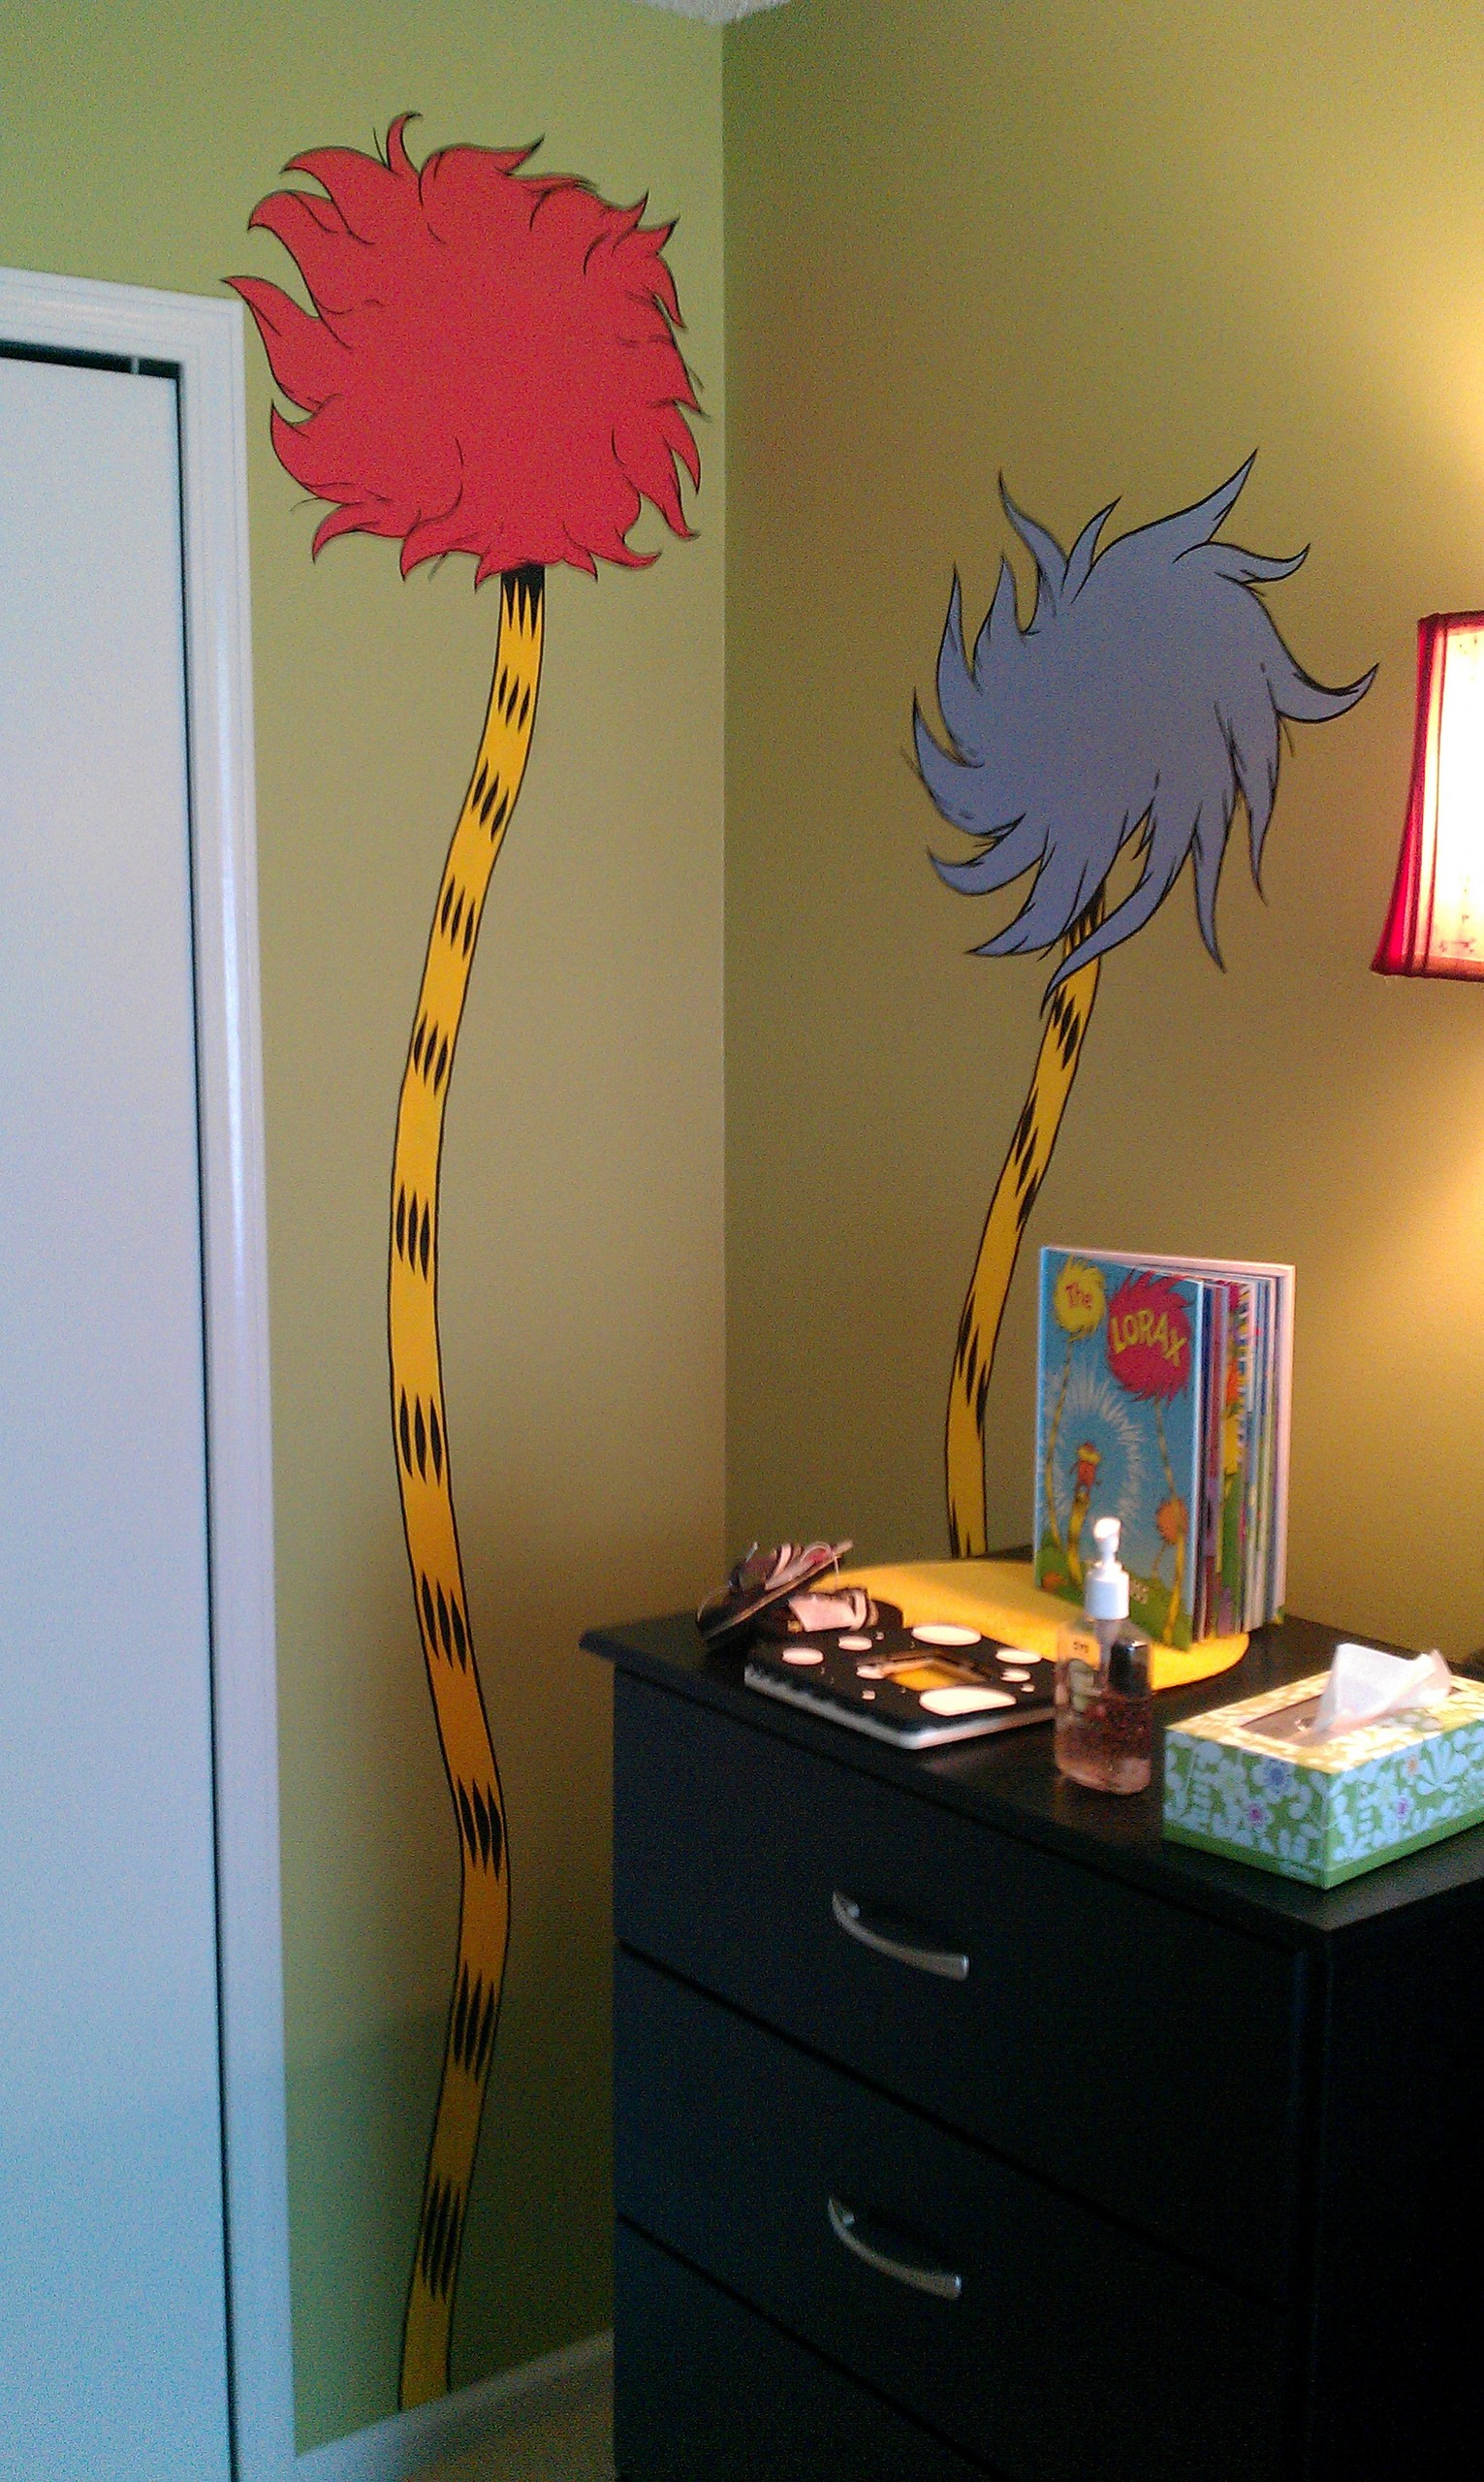 Dr seuss nursery mural dr seuss photo 25056691 fanpop for Dr seuss wall mural